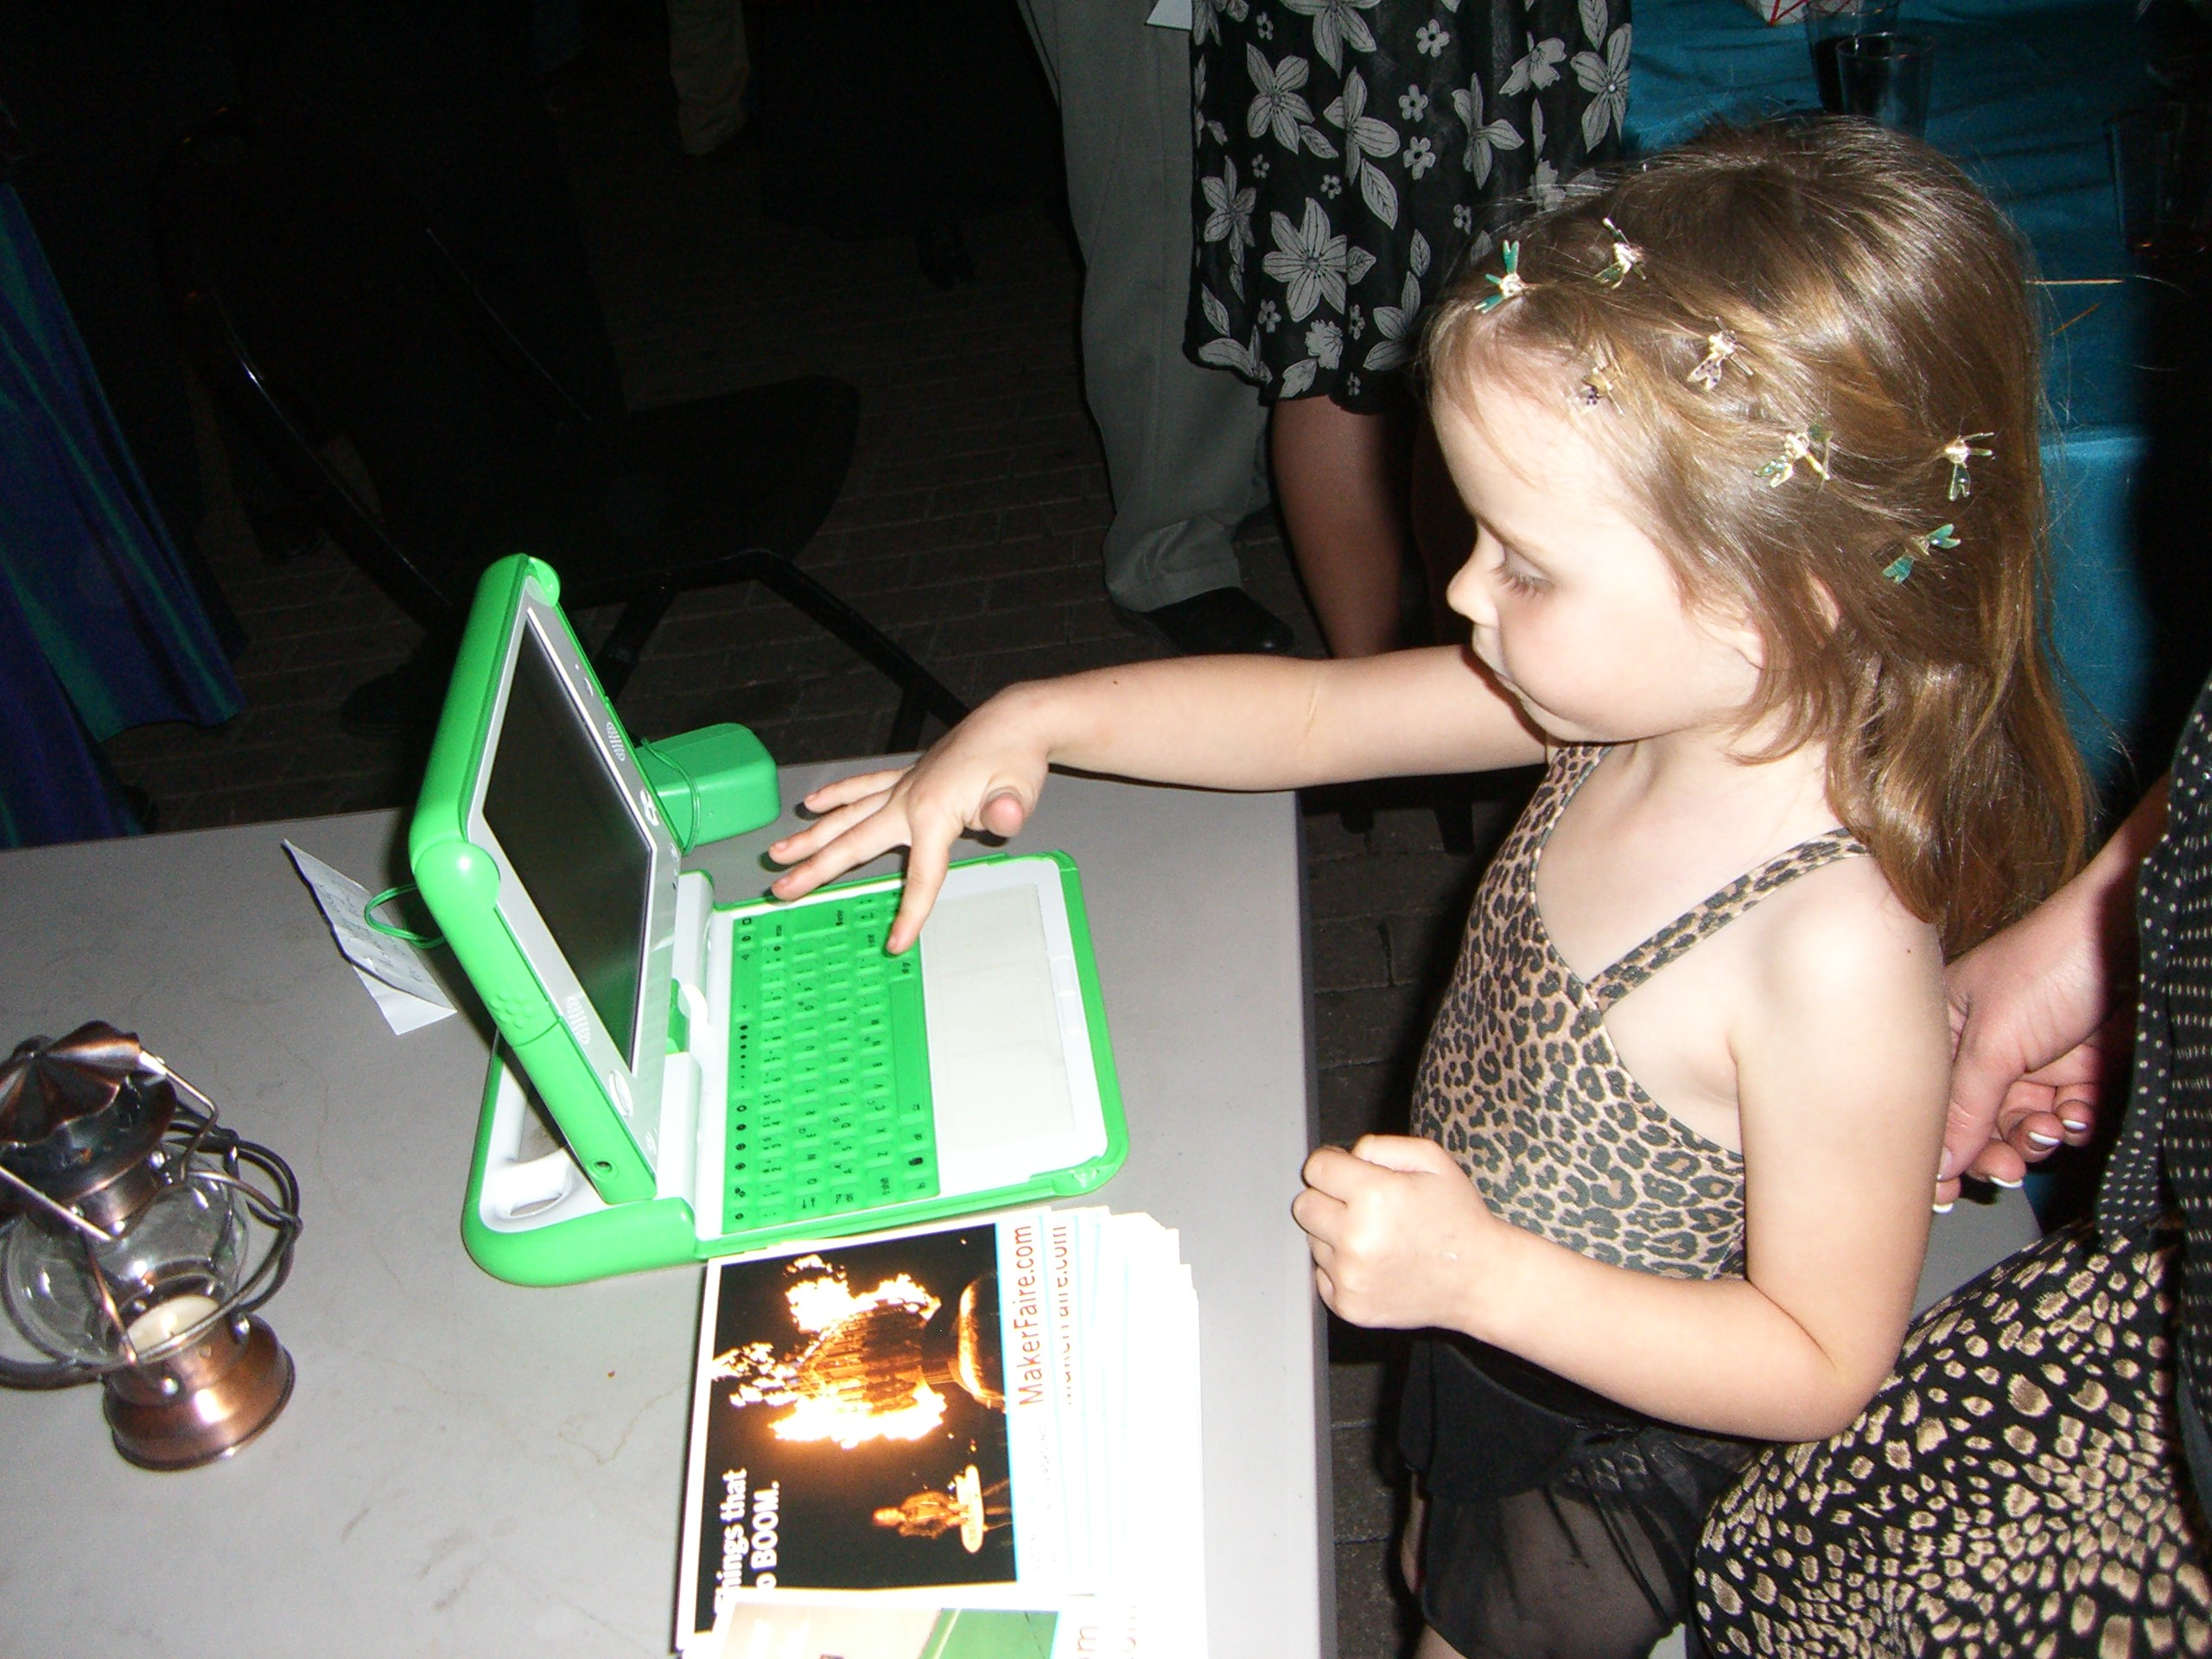 Typing on an OLPC / XO laptop at the steampunk party at SXSW 2007